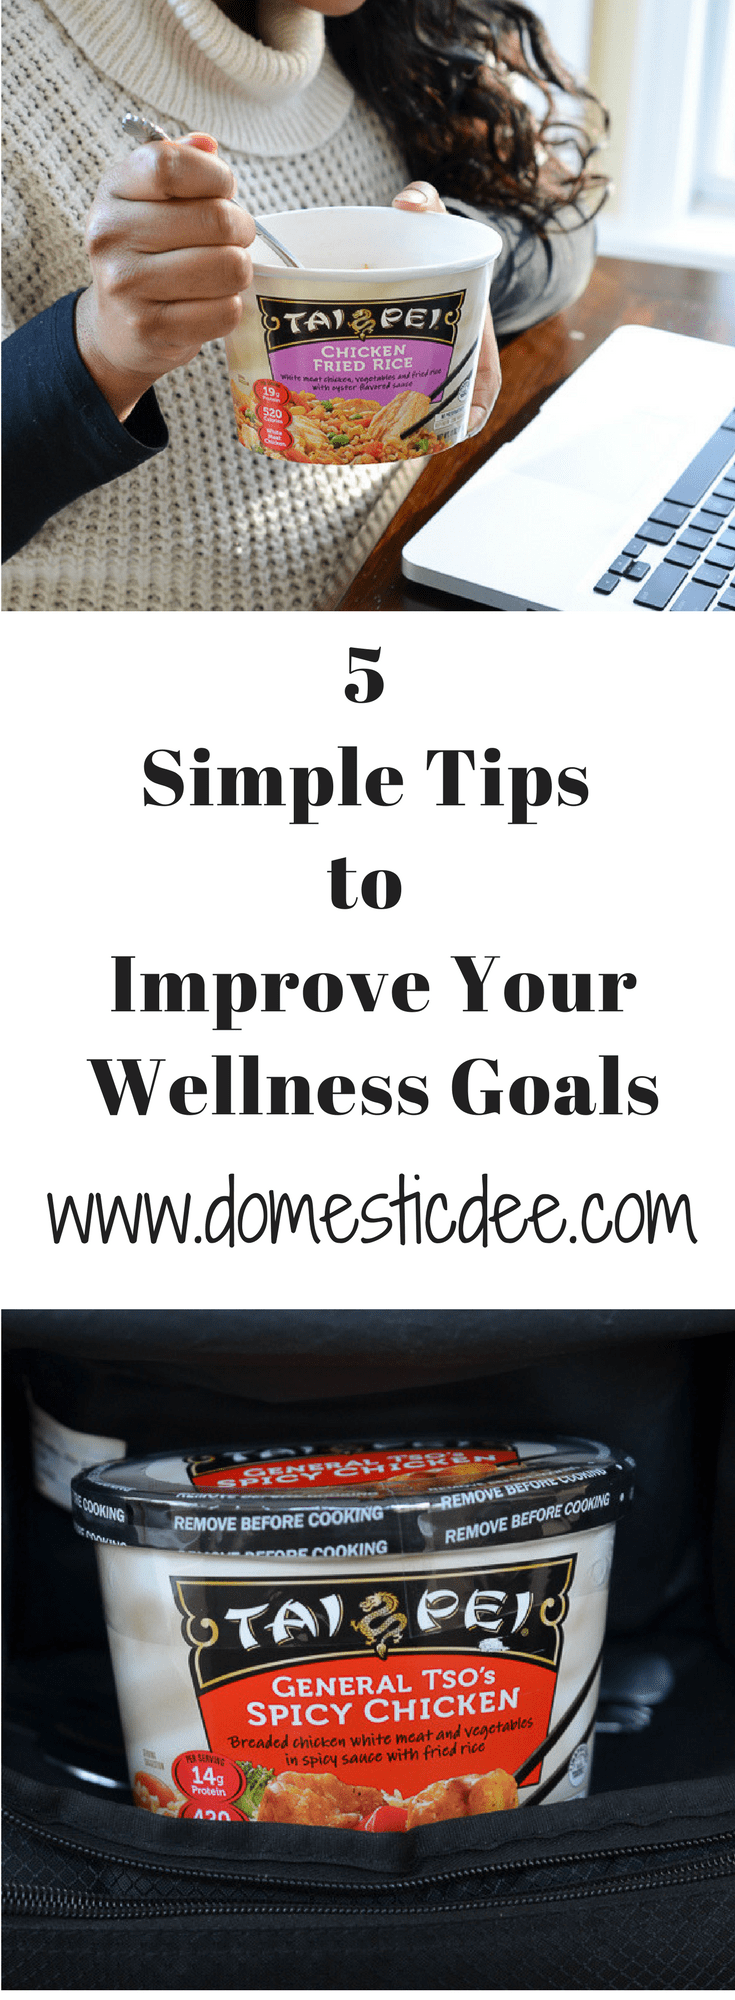 5 Simple Tips to Improve Your Wellness Goals domesticdee.com #wellnessgoals #asianfood